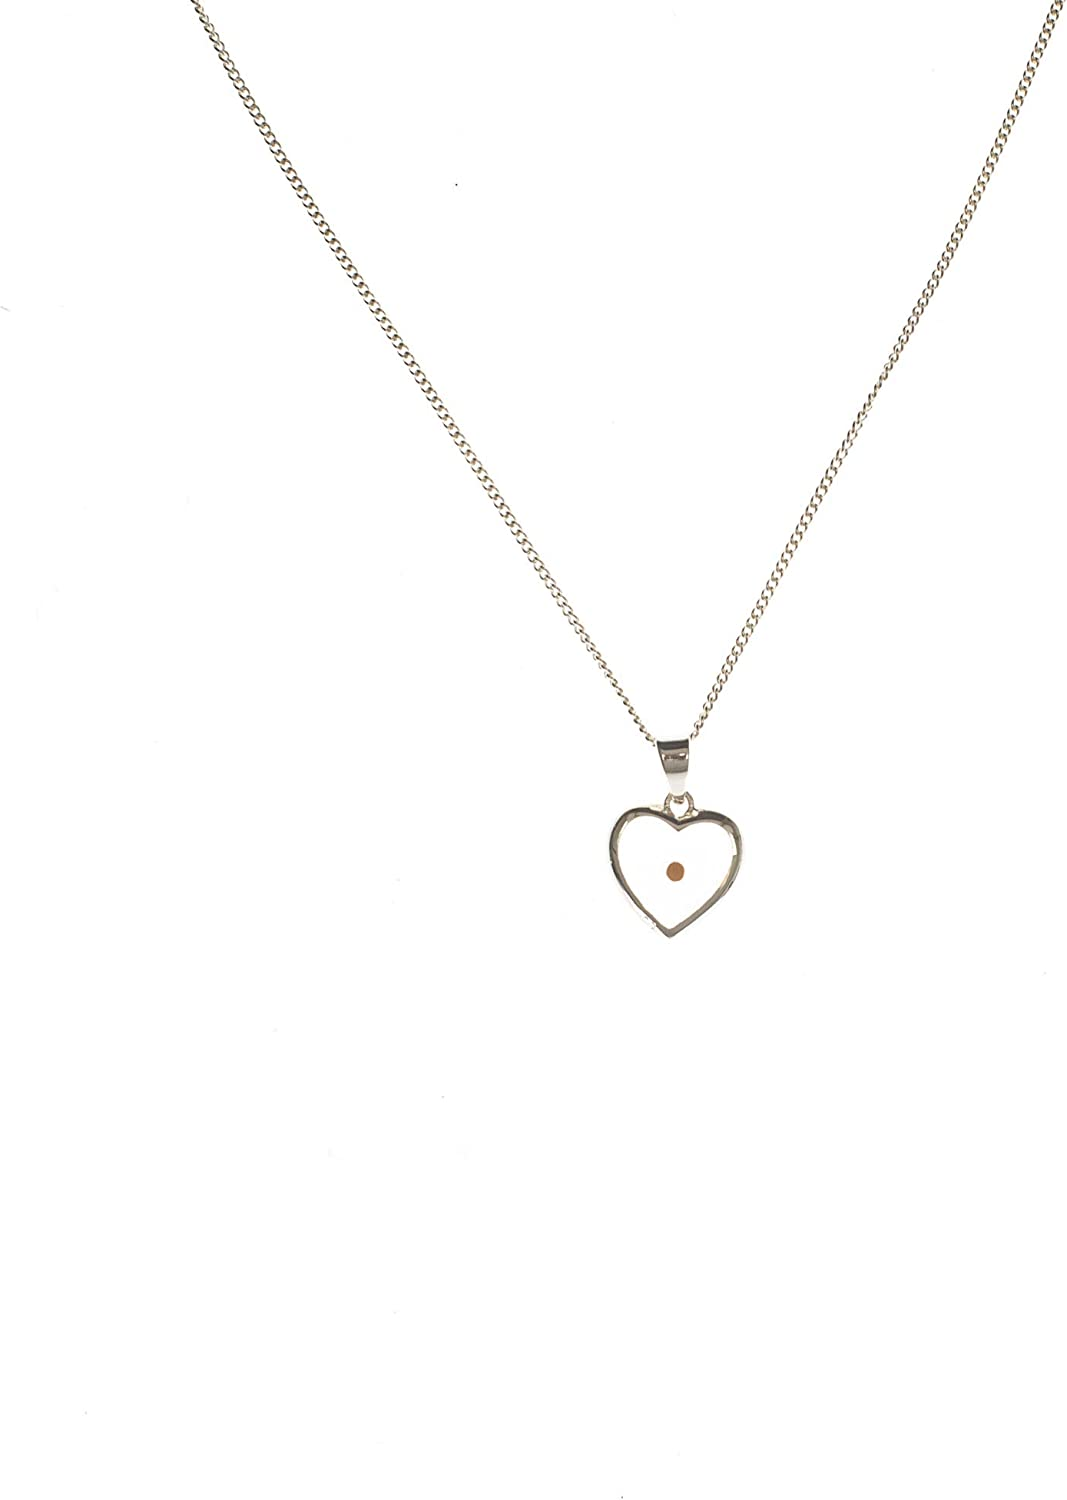 Best Quality Free Gift Box Sterling Silver Small Heart with Mustard Seed Pendant